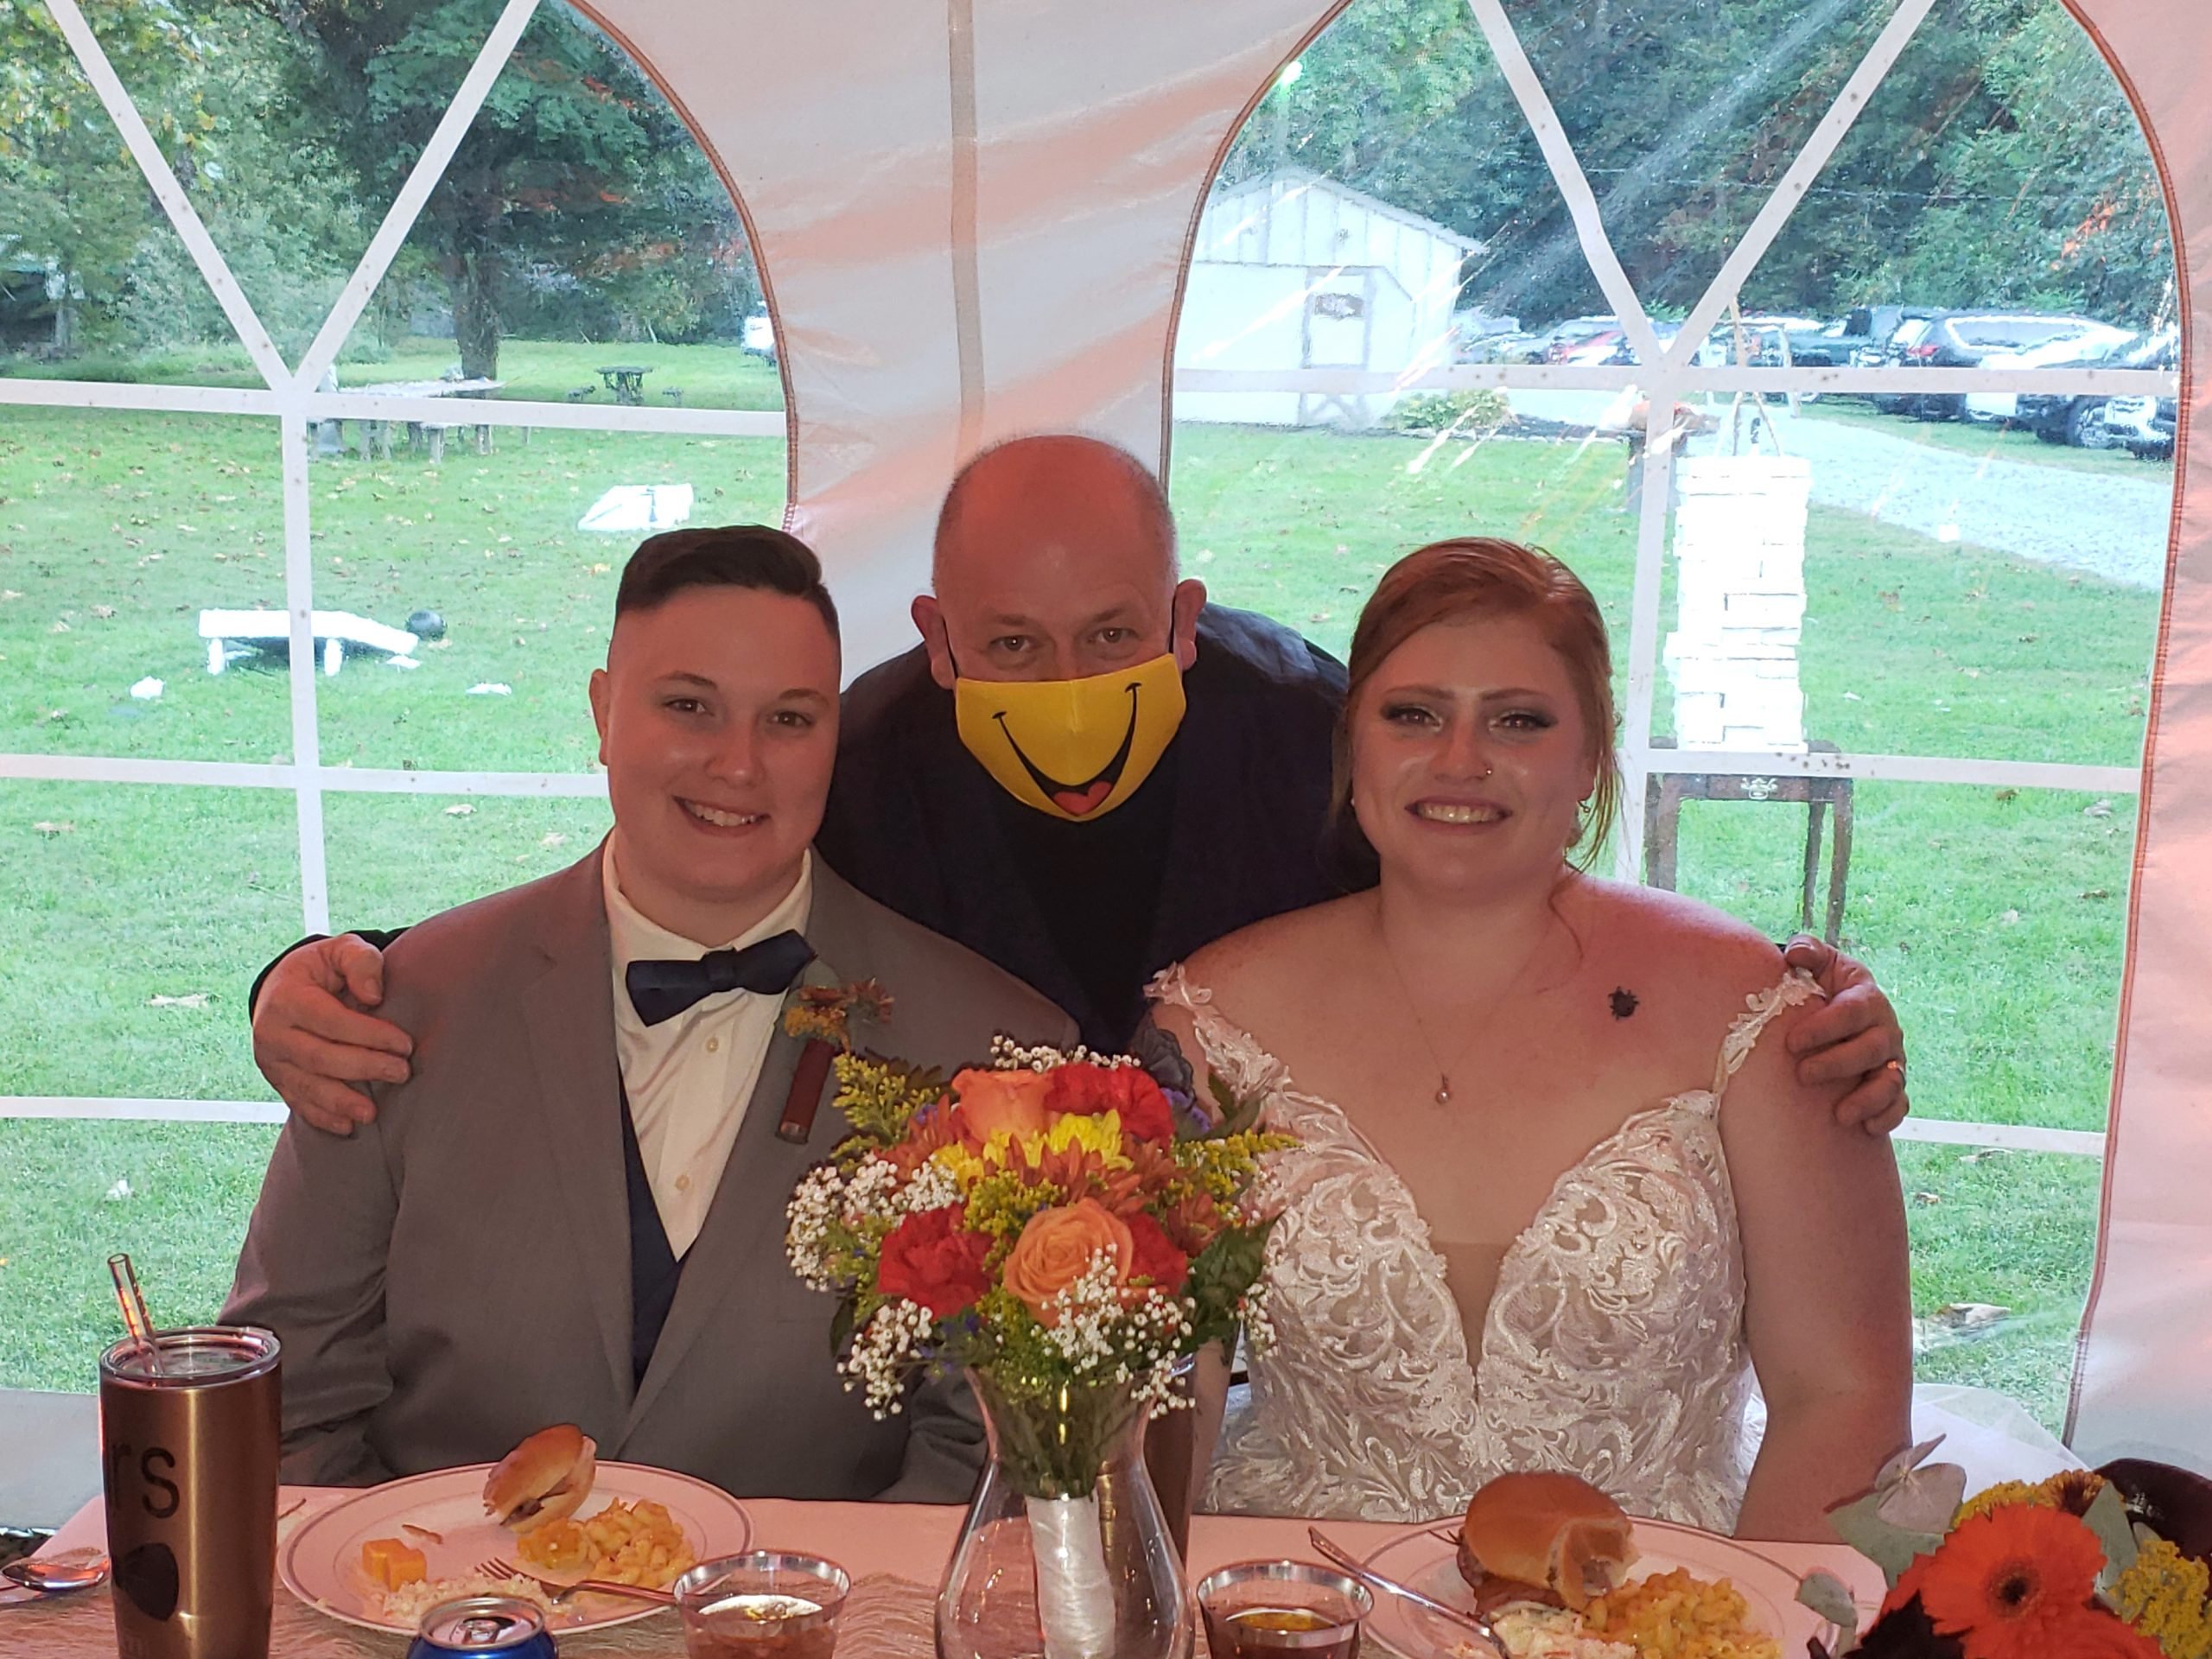 All Party Starz Entertainment, Wedding DJ in PA, Recognized with WeddingWire Couples Choice 2021 Award 1